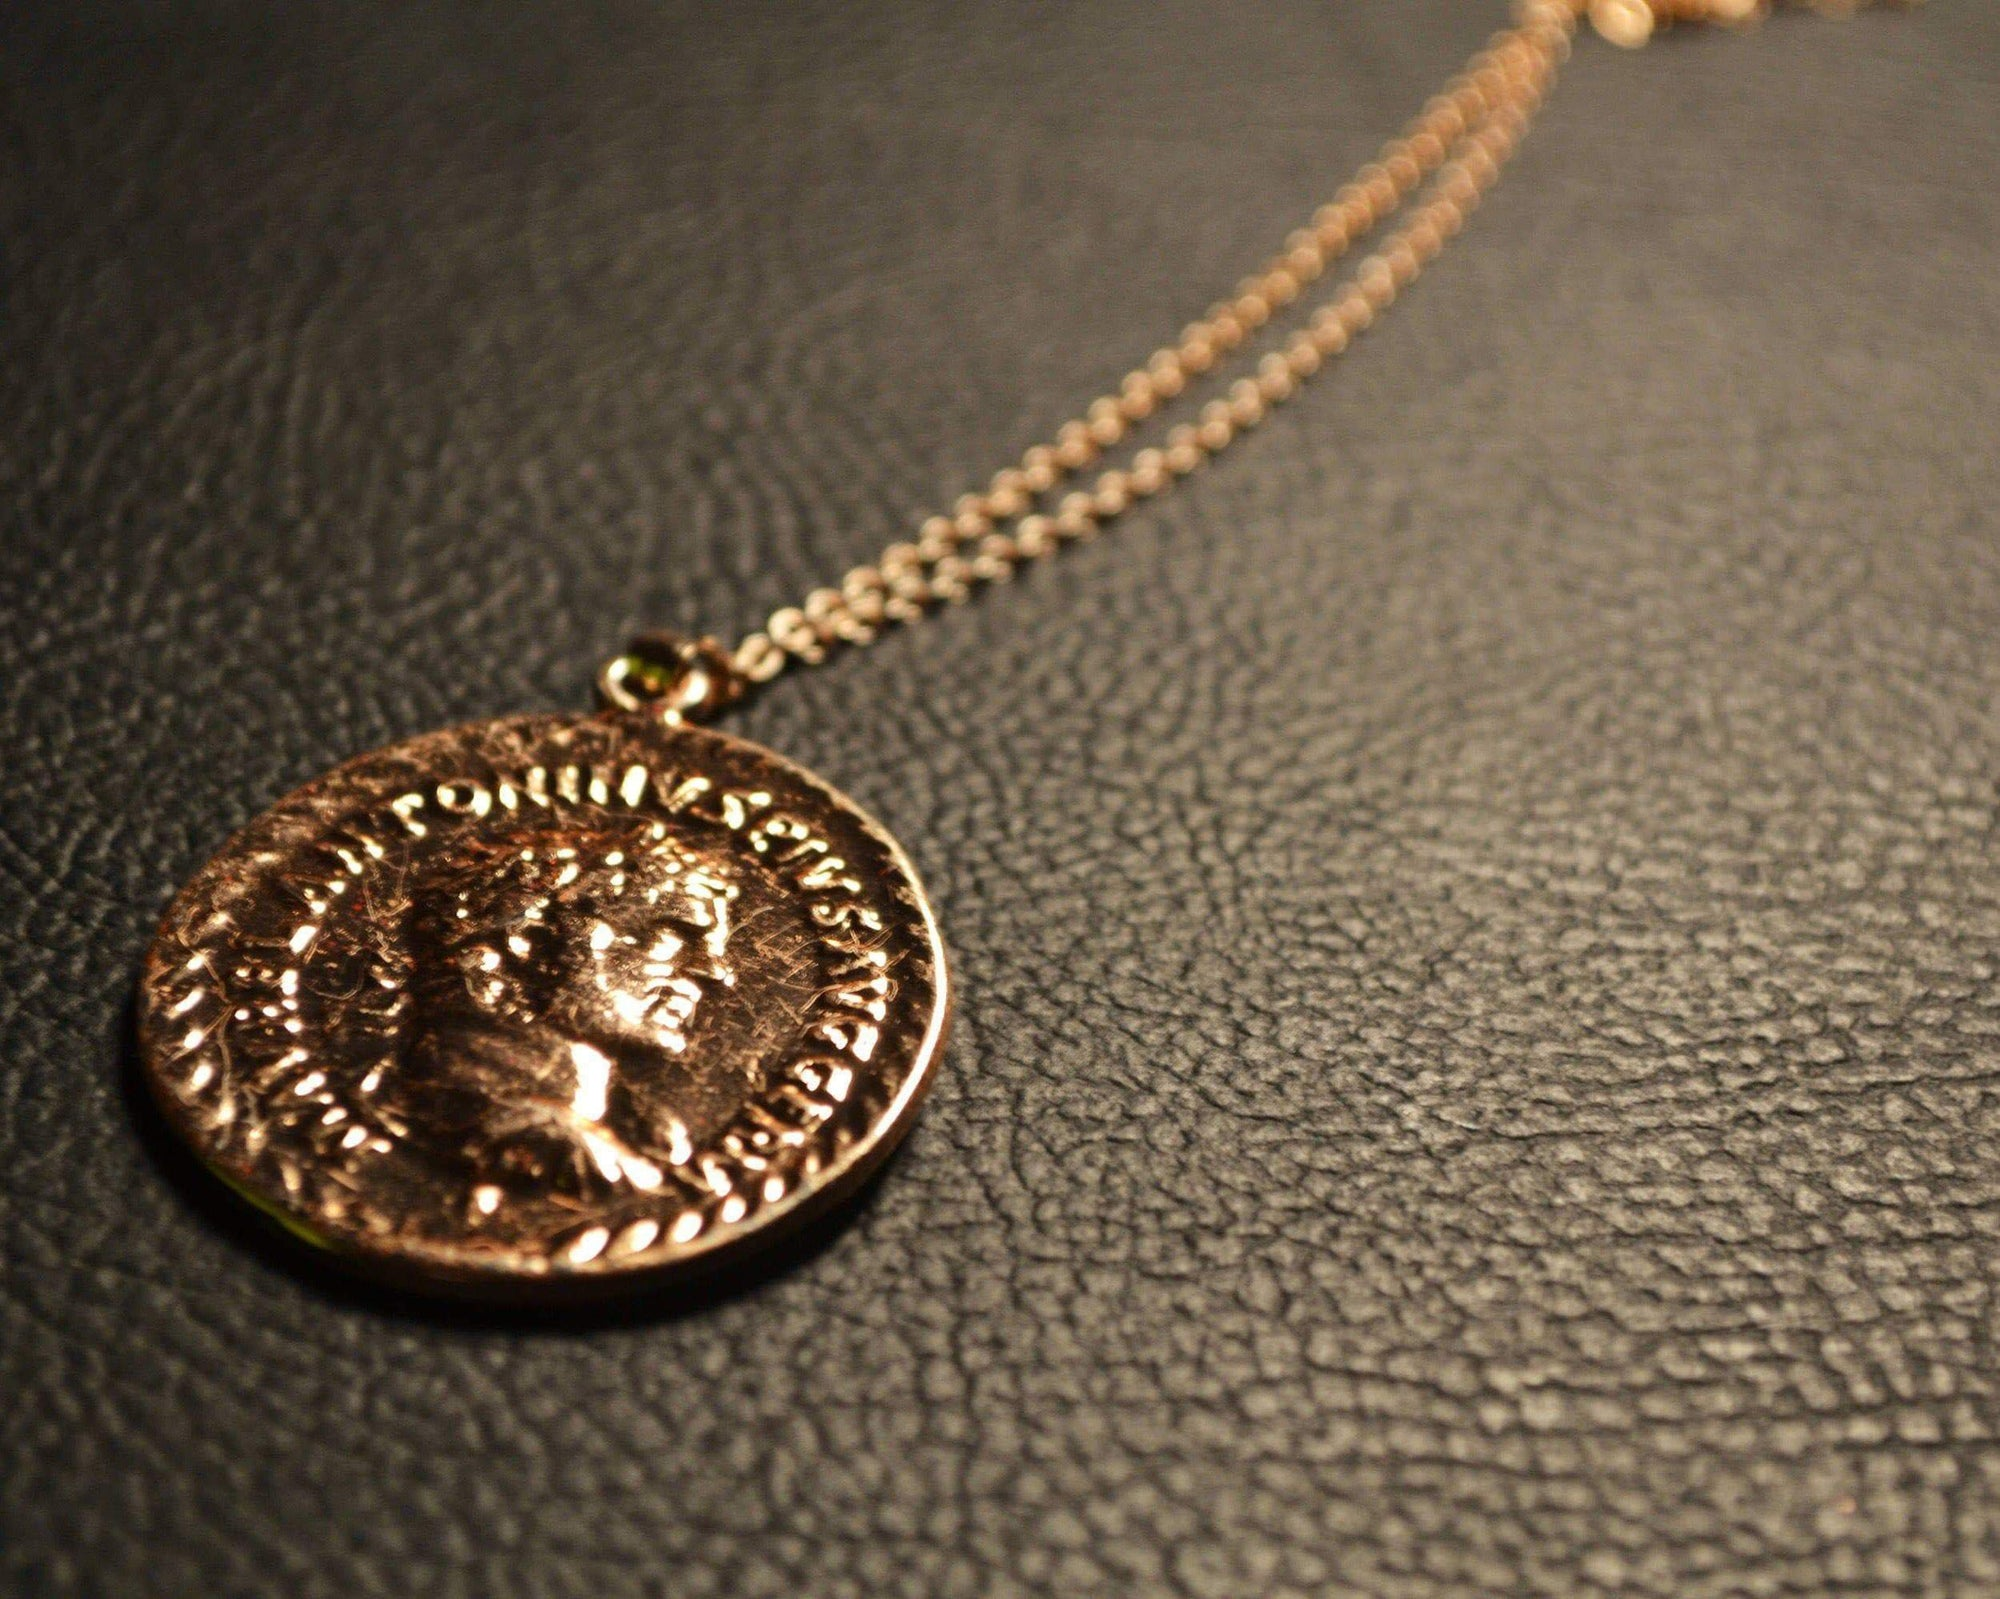 Ancient Roman Emperor Caracalla Coin Pendant and Necklace Ancient Treasures Ancientreasures Viking Odin Thor Mjolnir Celtic Ancient Egypt Norse Norse Mythology